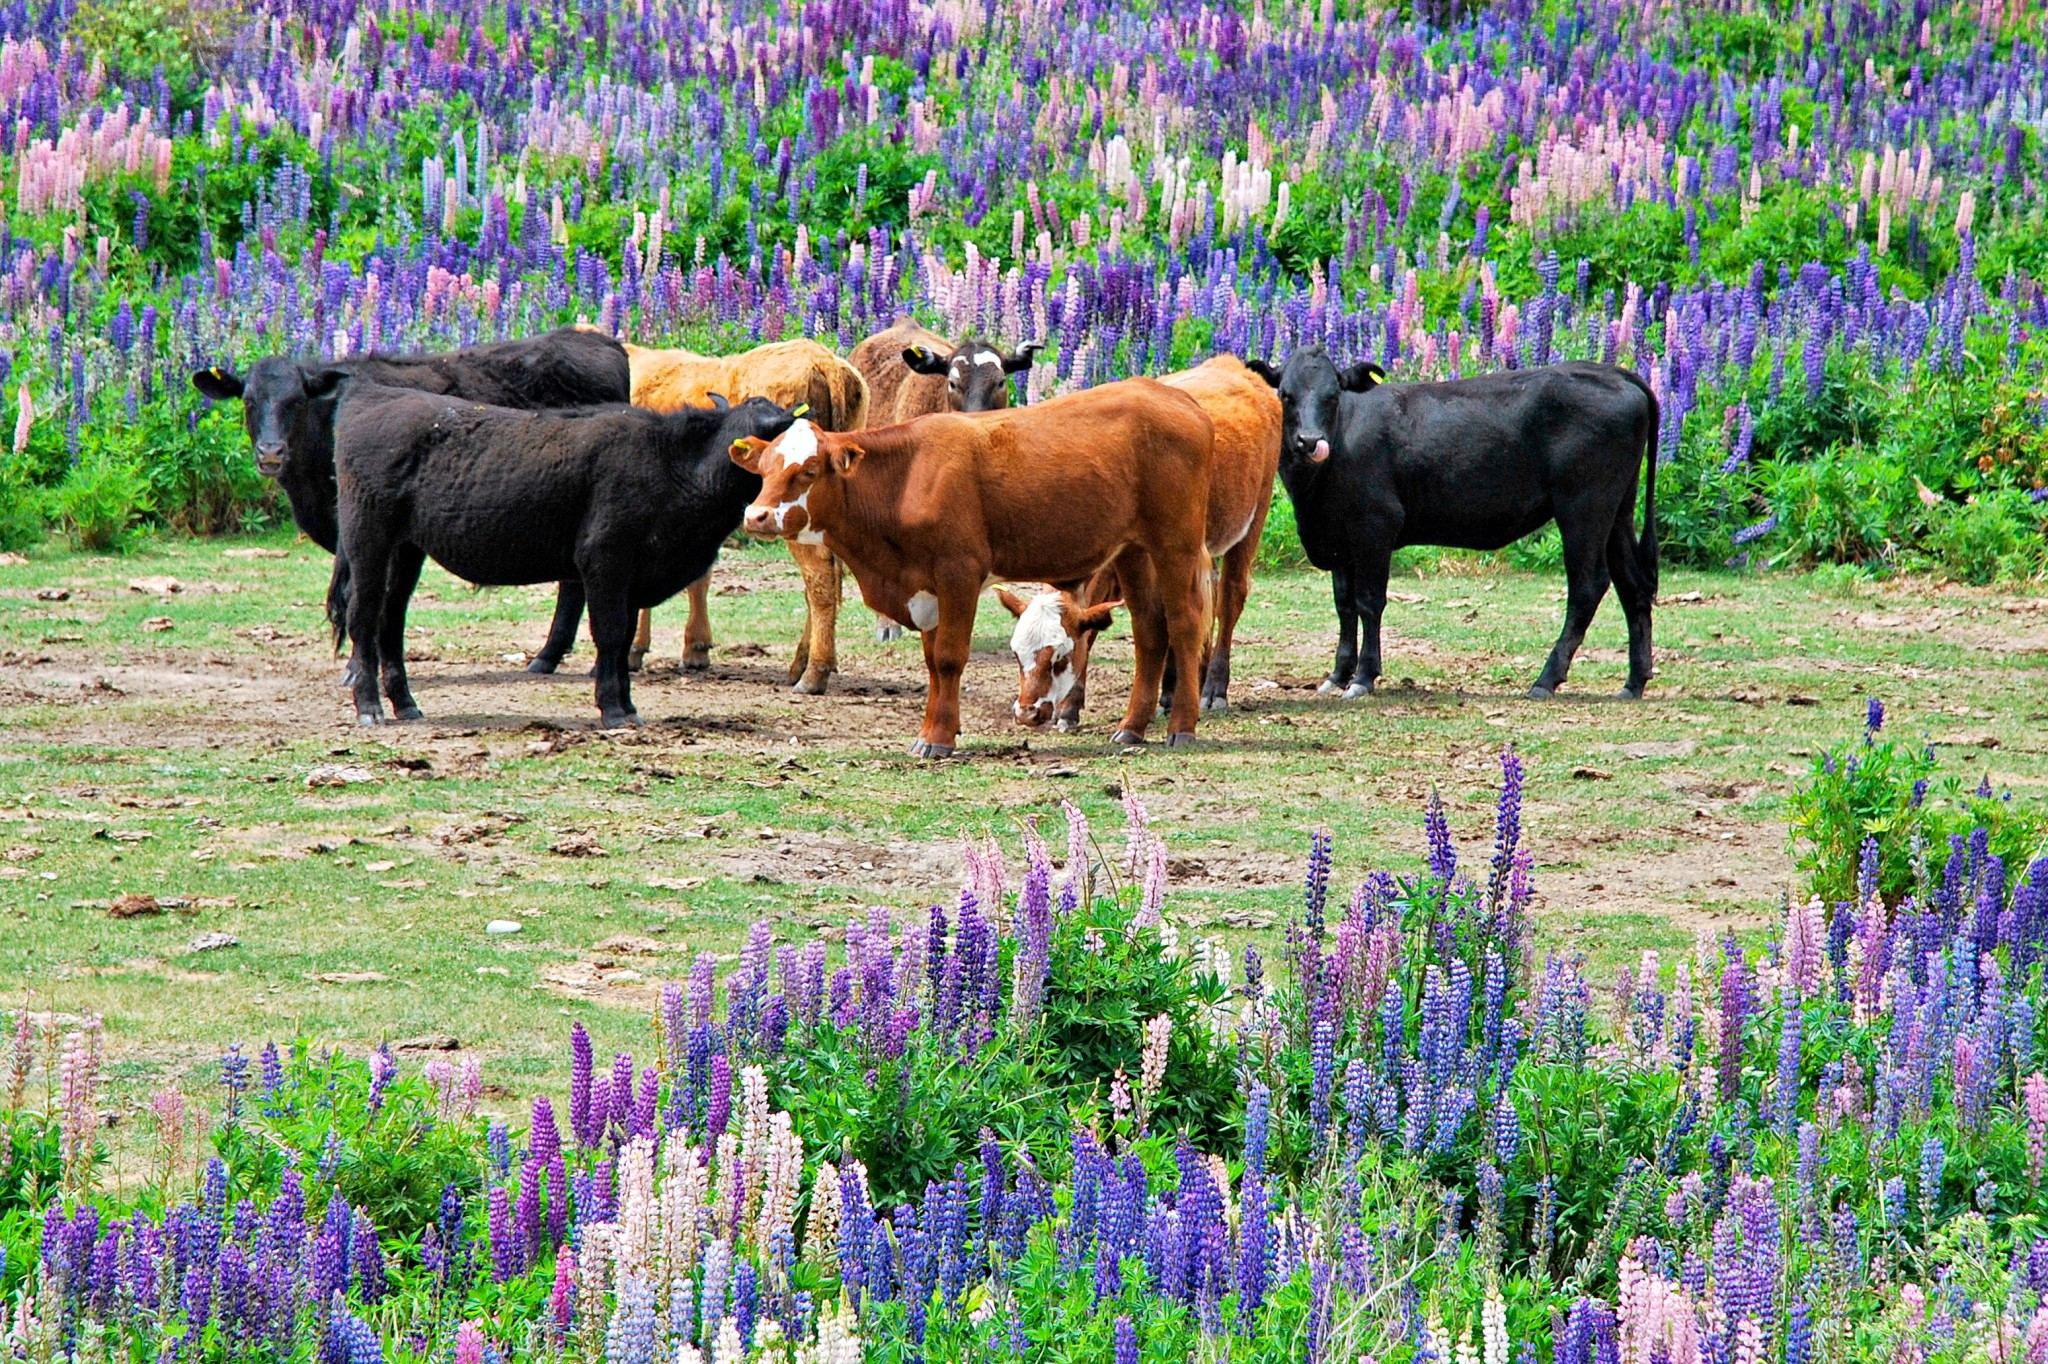 Cows in a field of wild lupins in New Zealand